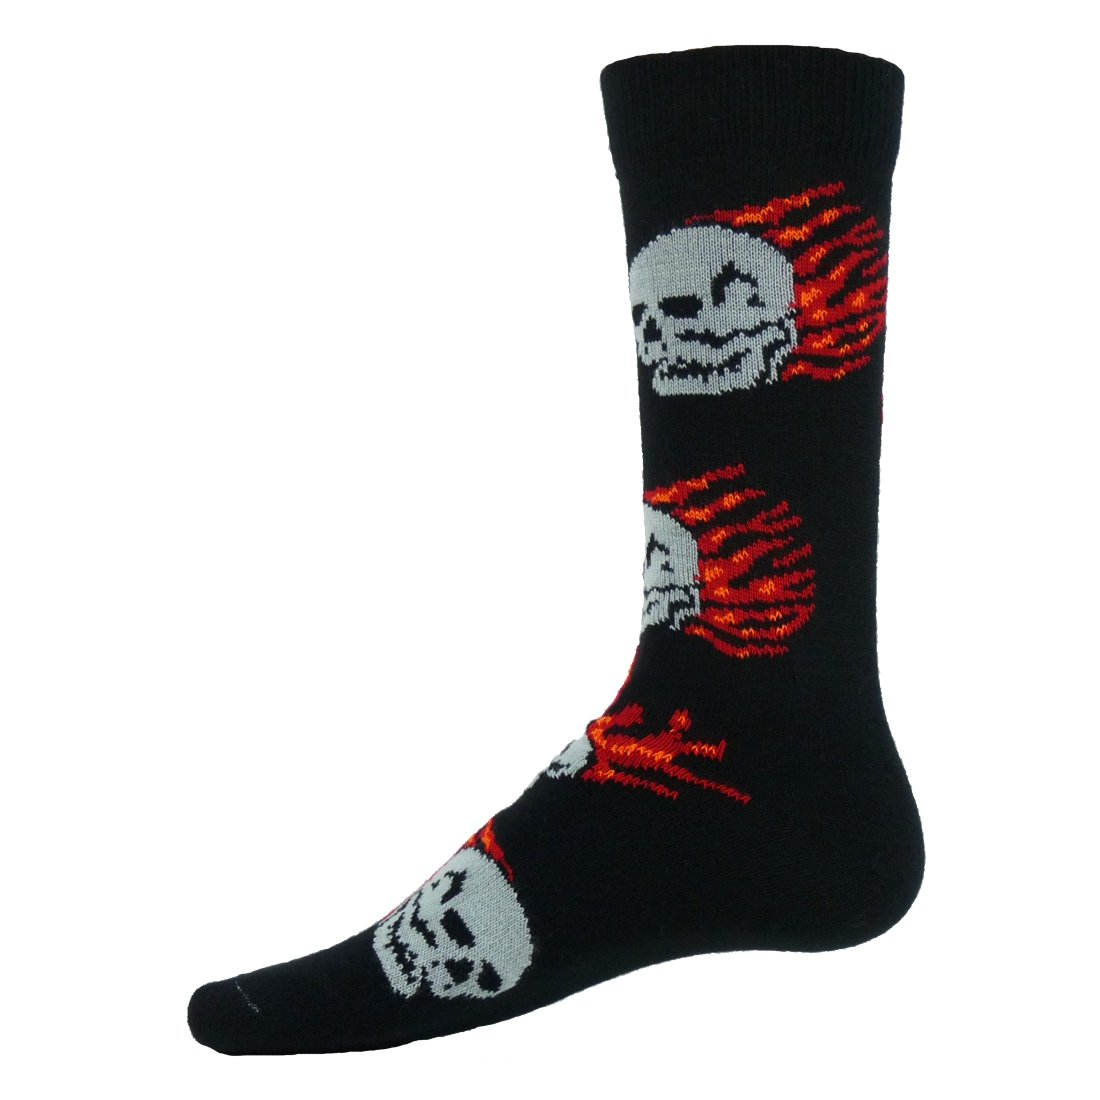 Red Lion Blaze Flat Knit Crew Socks (Black - Medium) 721109UT